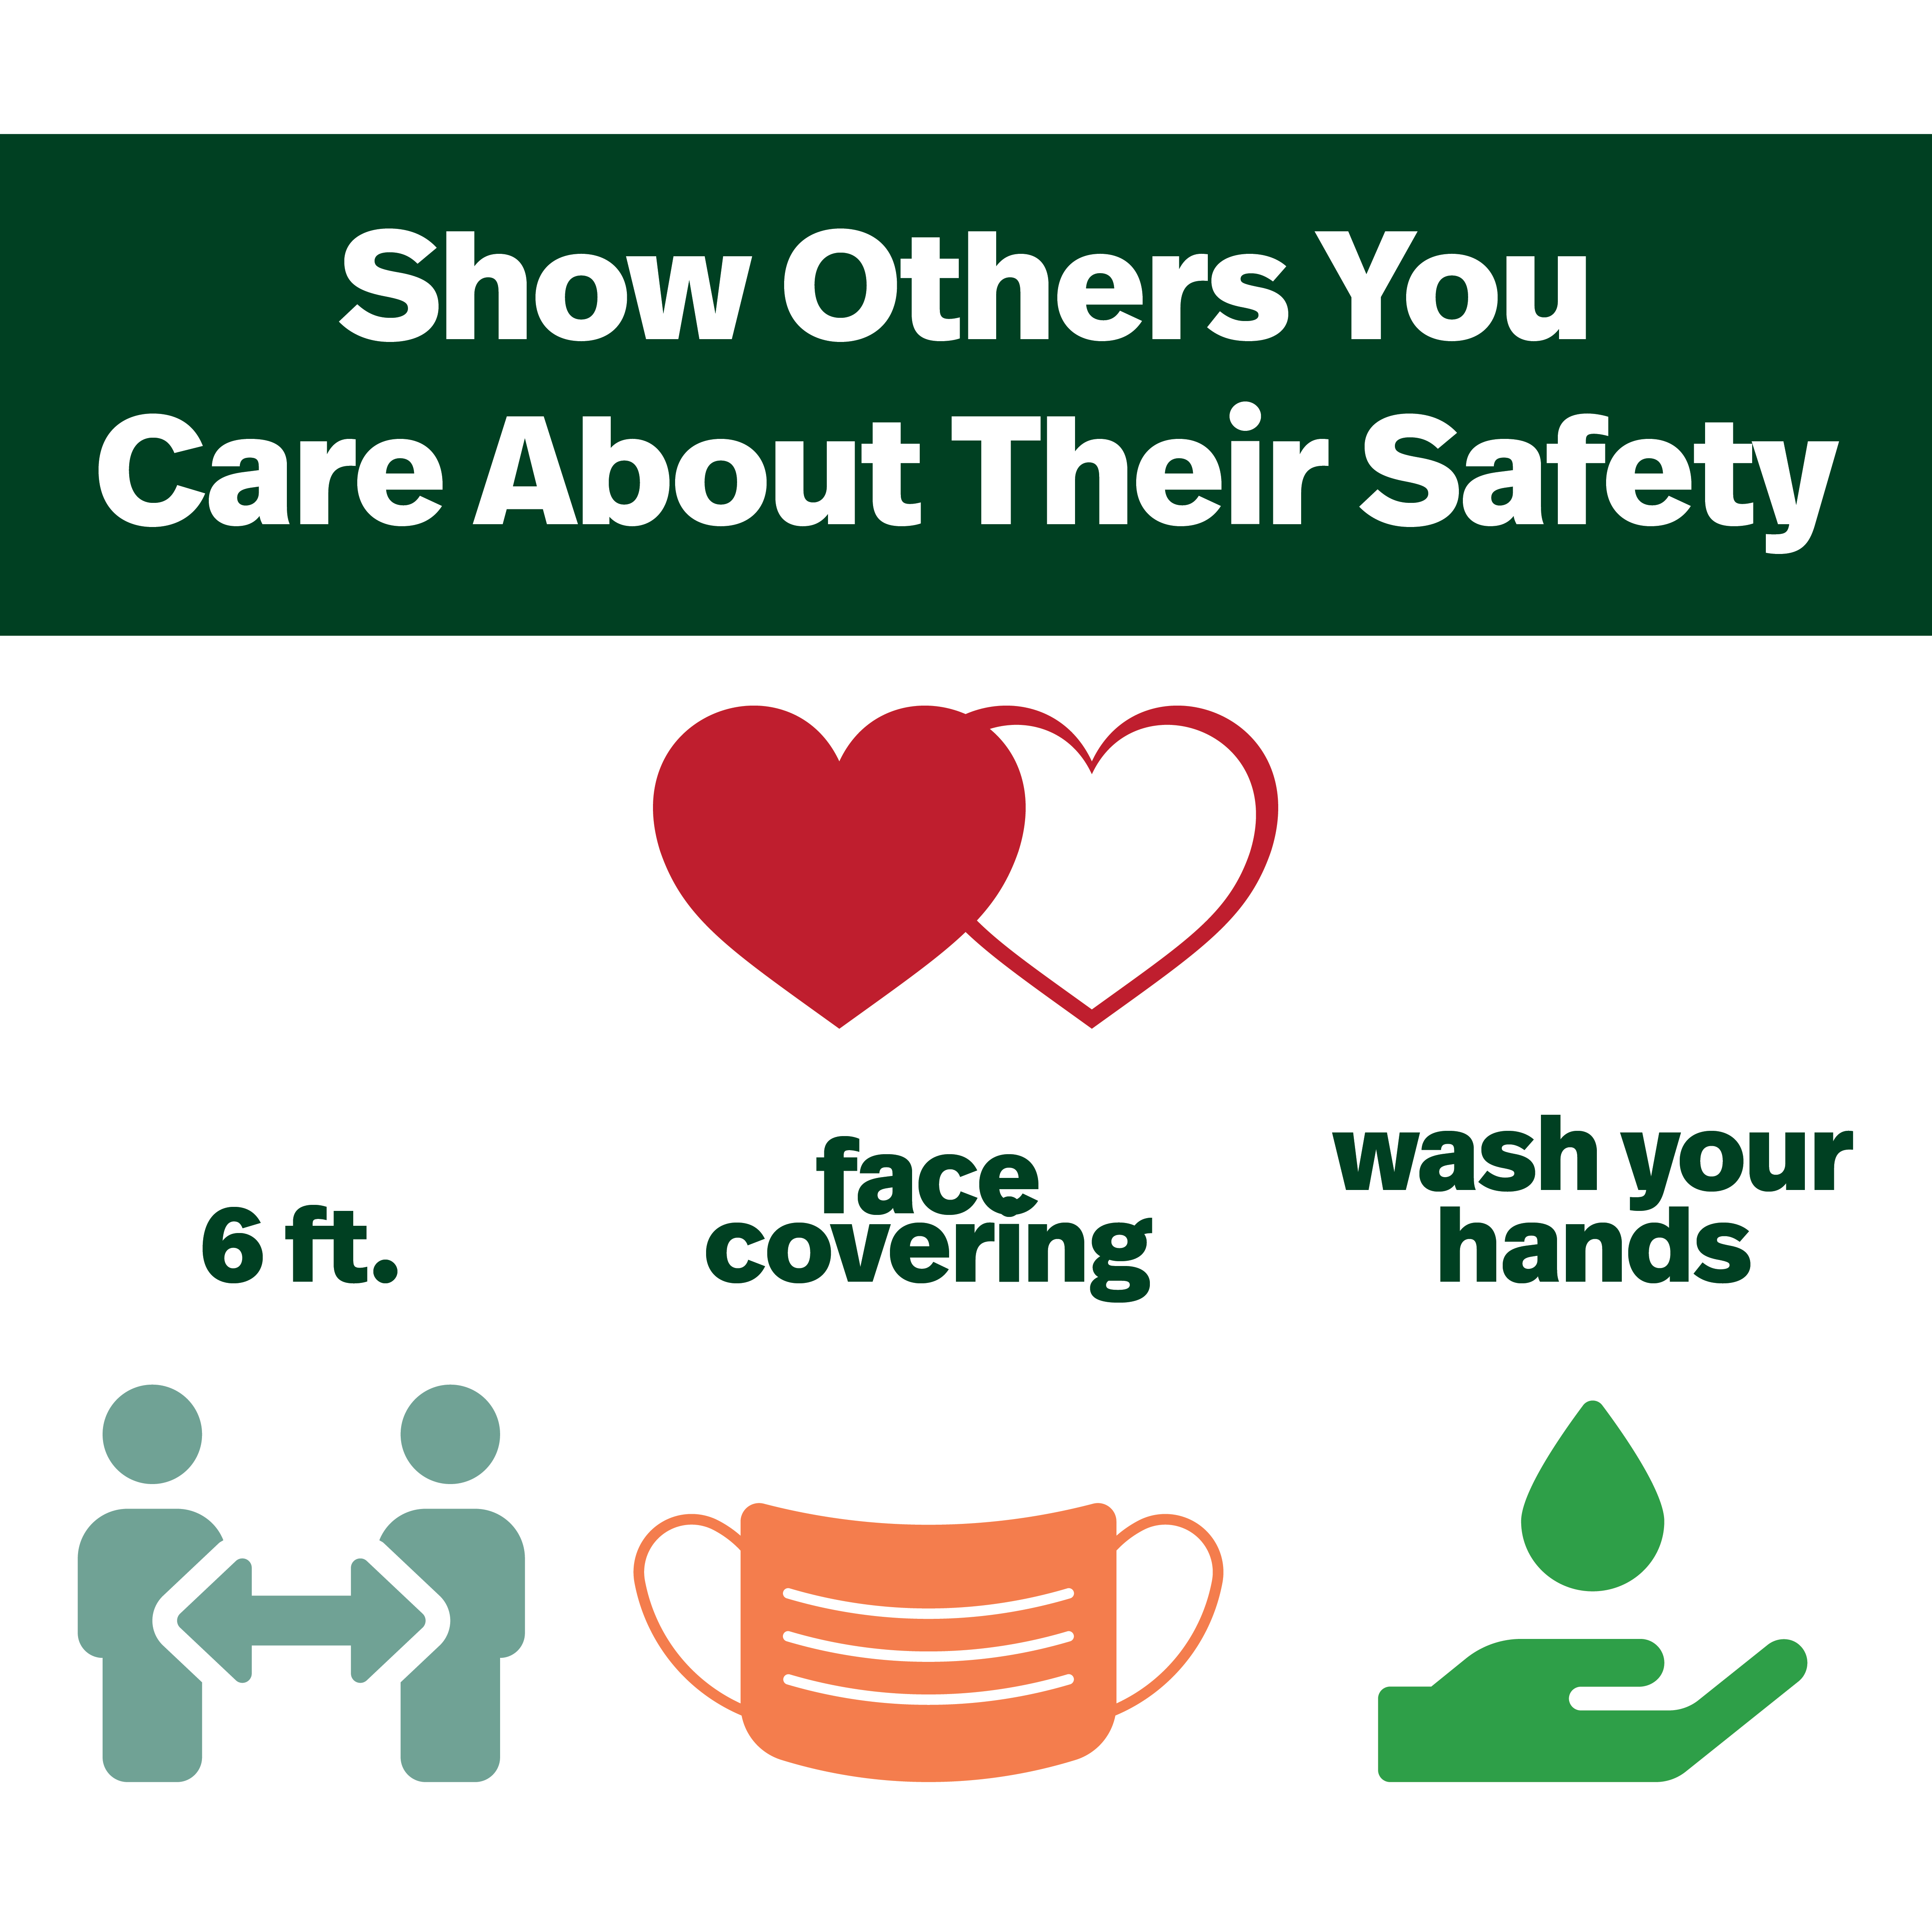 Show others you care about their safety, 6 ft distance, wear a face covering, wash your hands.